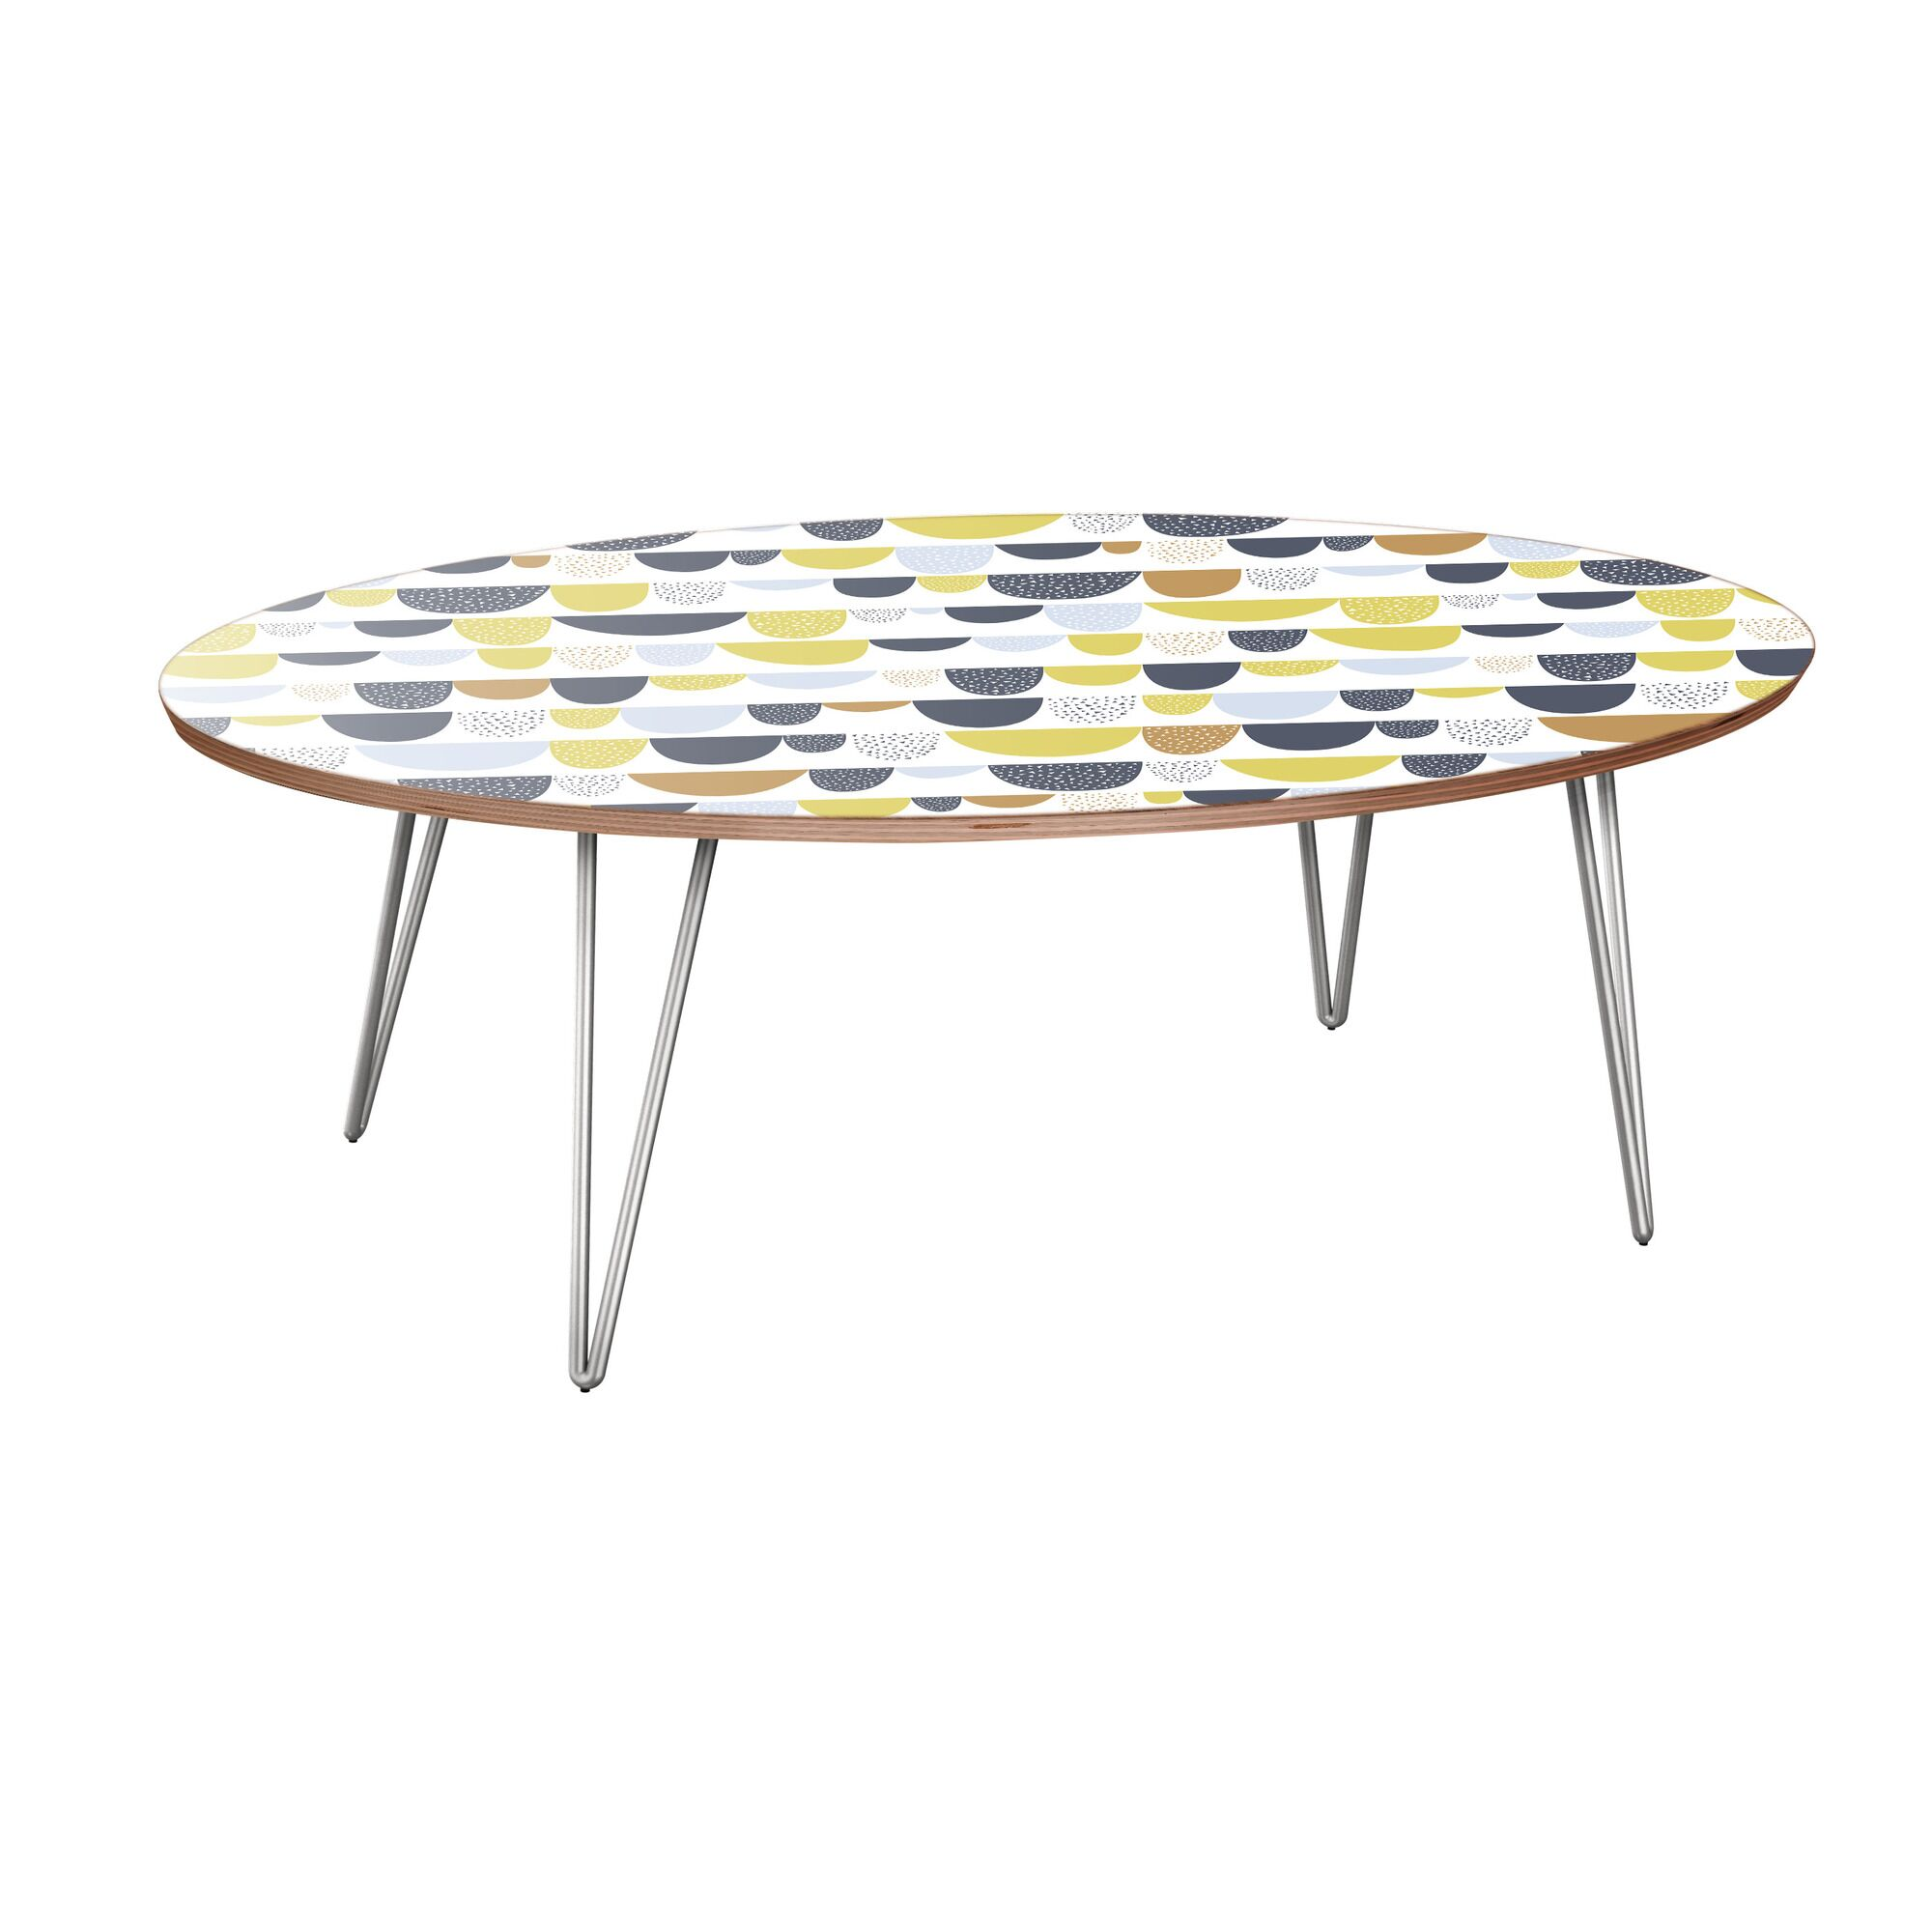 Jake Coffee Table Table Base Color: Chrome, Table Top Color: Walnut